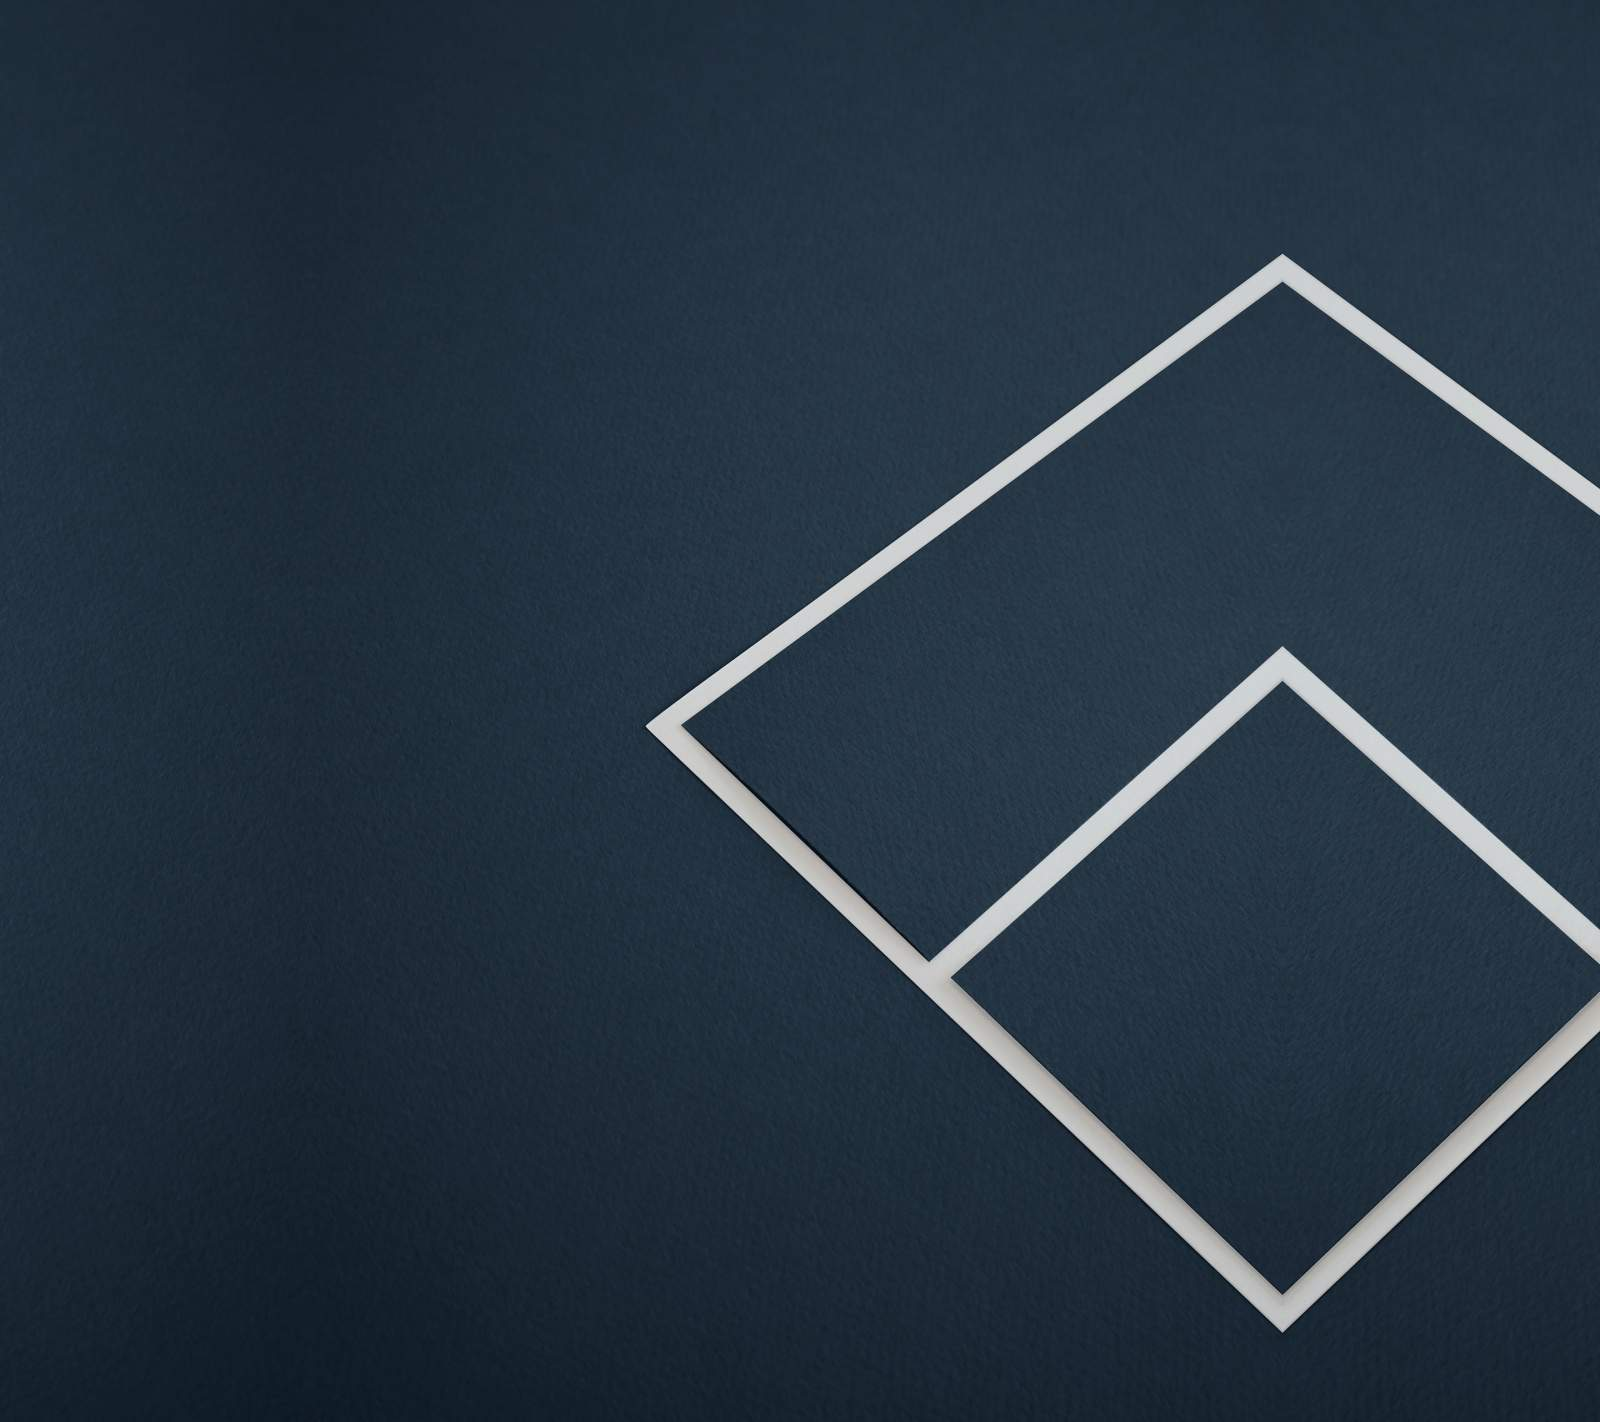 Cult of Android - Download HTC's Quad HD wallpapers from the